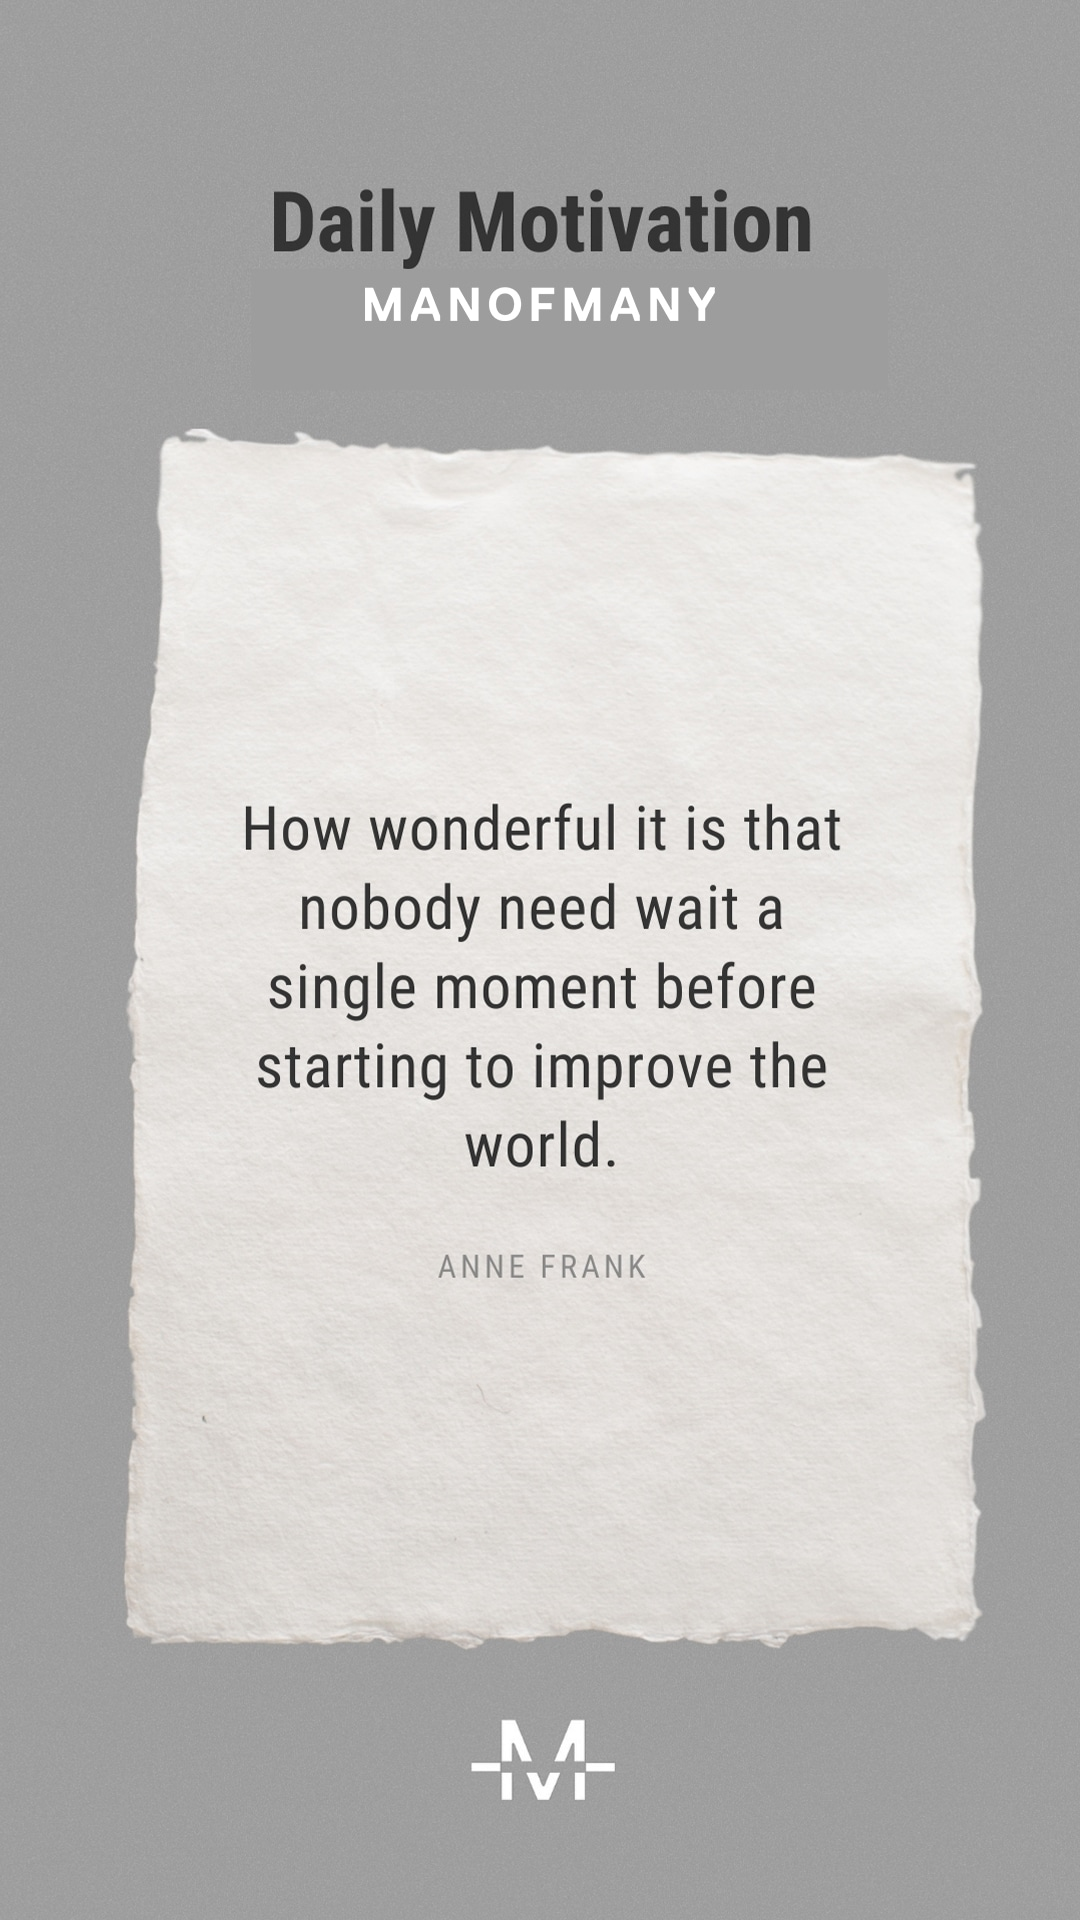 How wonderful it is that nobody need wait a single moment before starting to improve the world. –Anne Frank quote